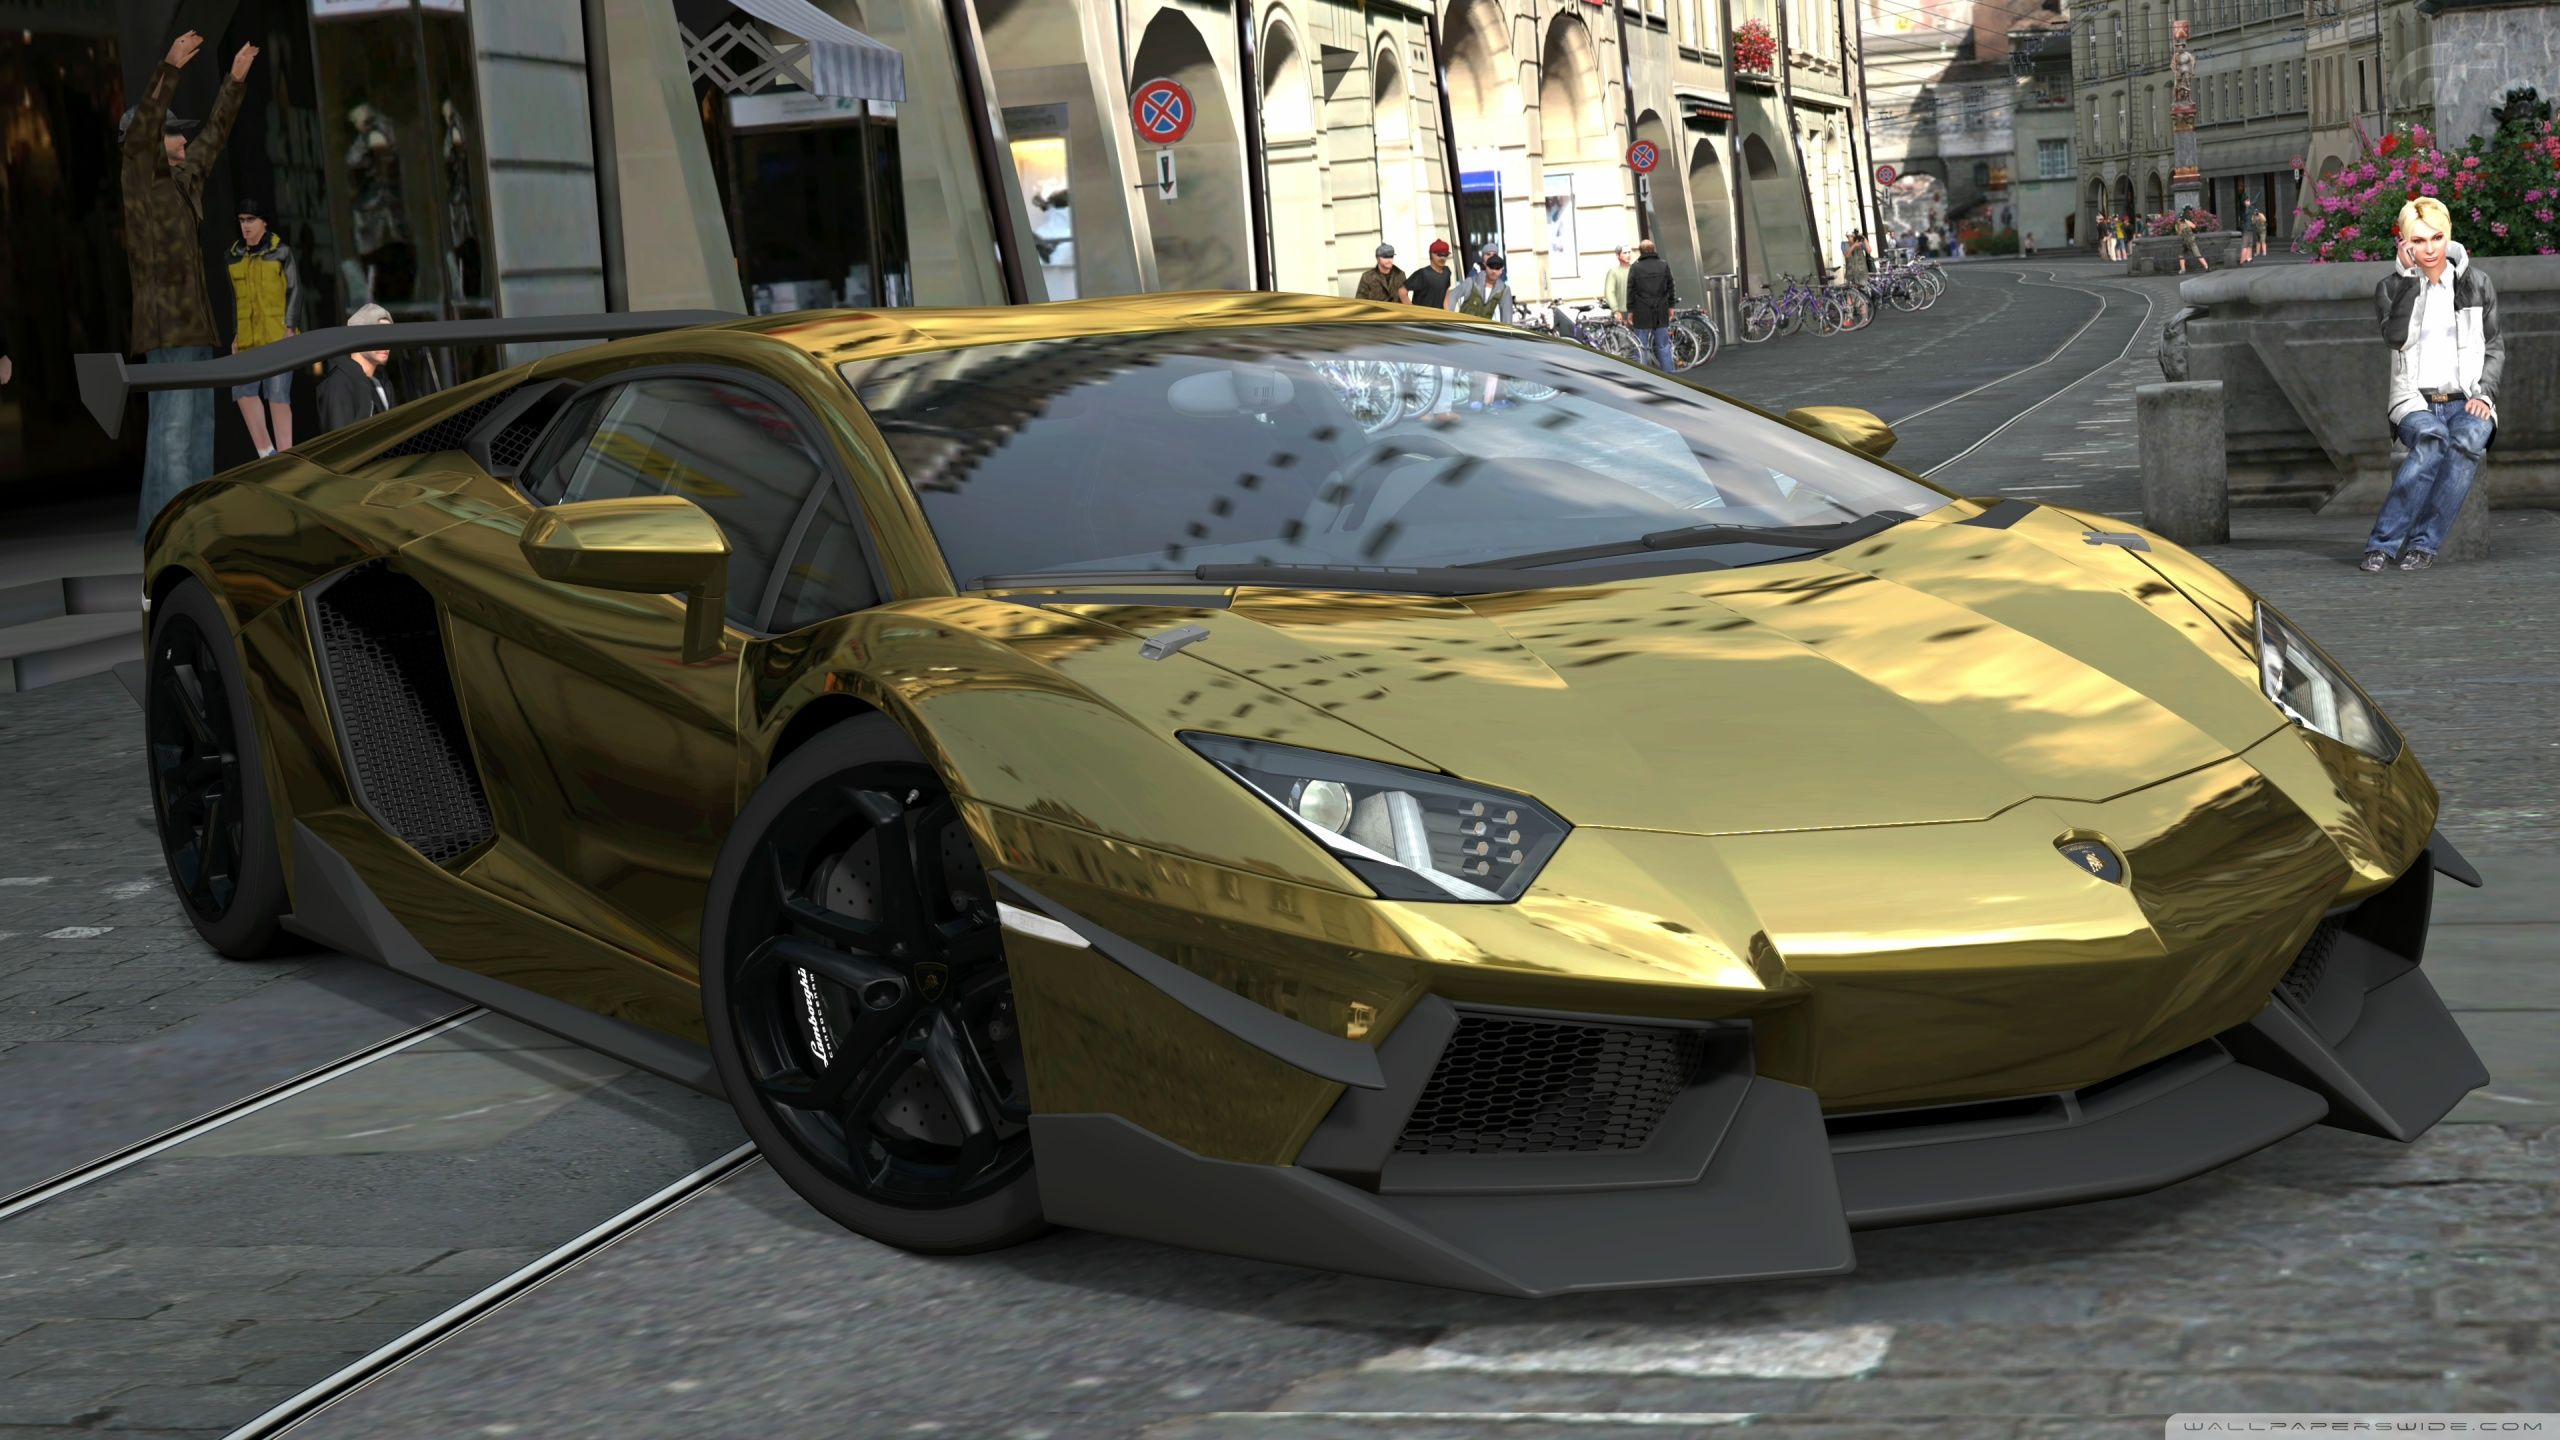 wallpaper lamborghini gallardo image download | 3d wallpapers